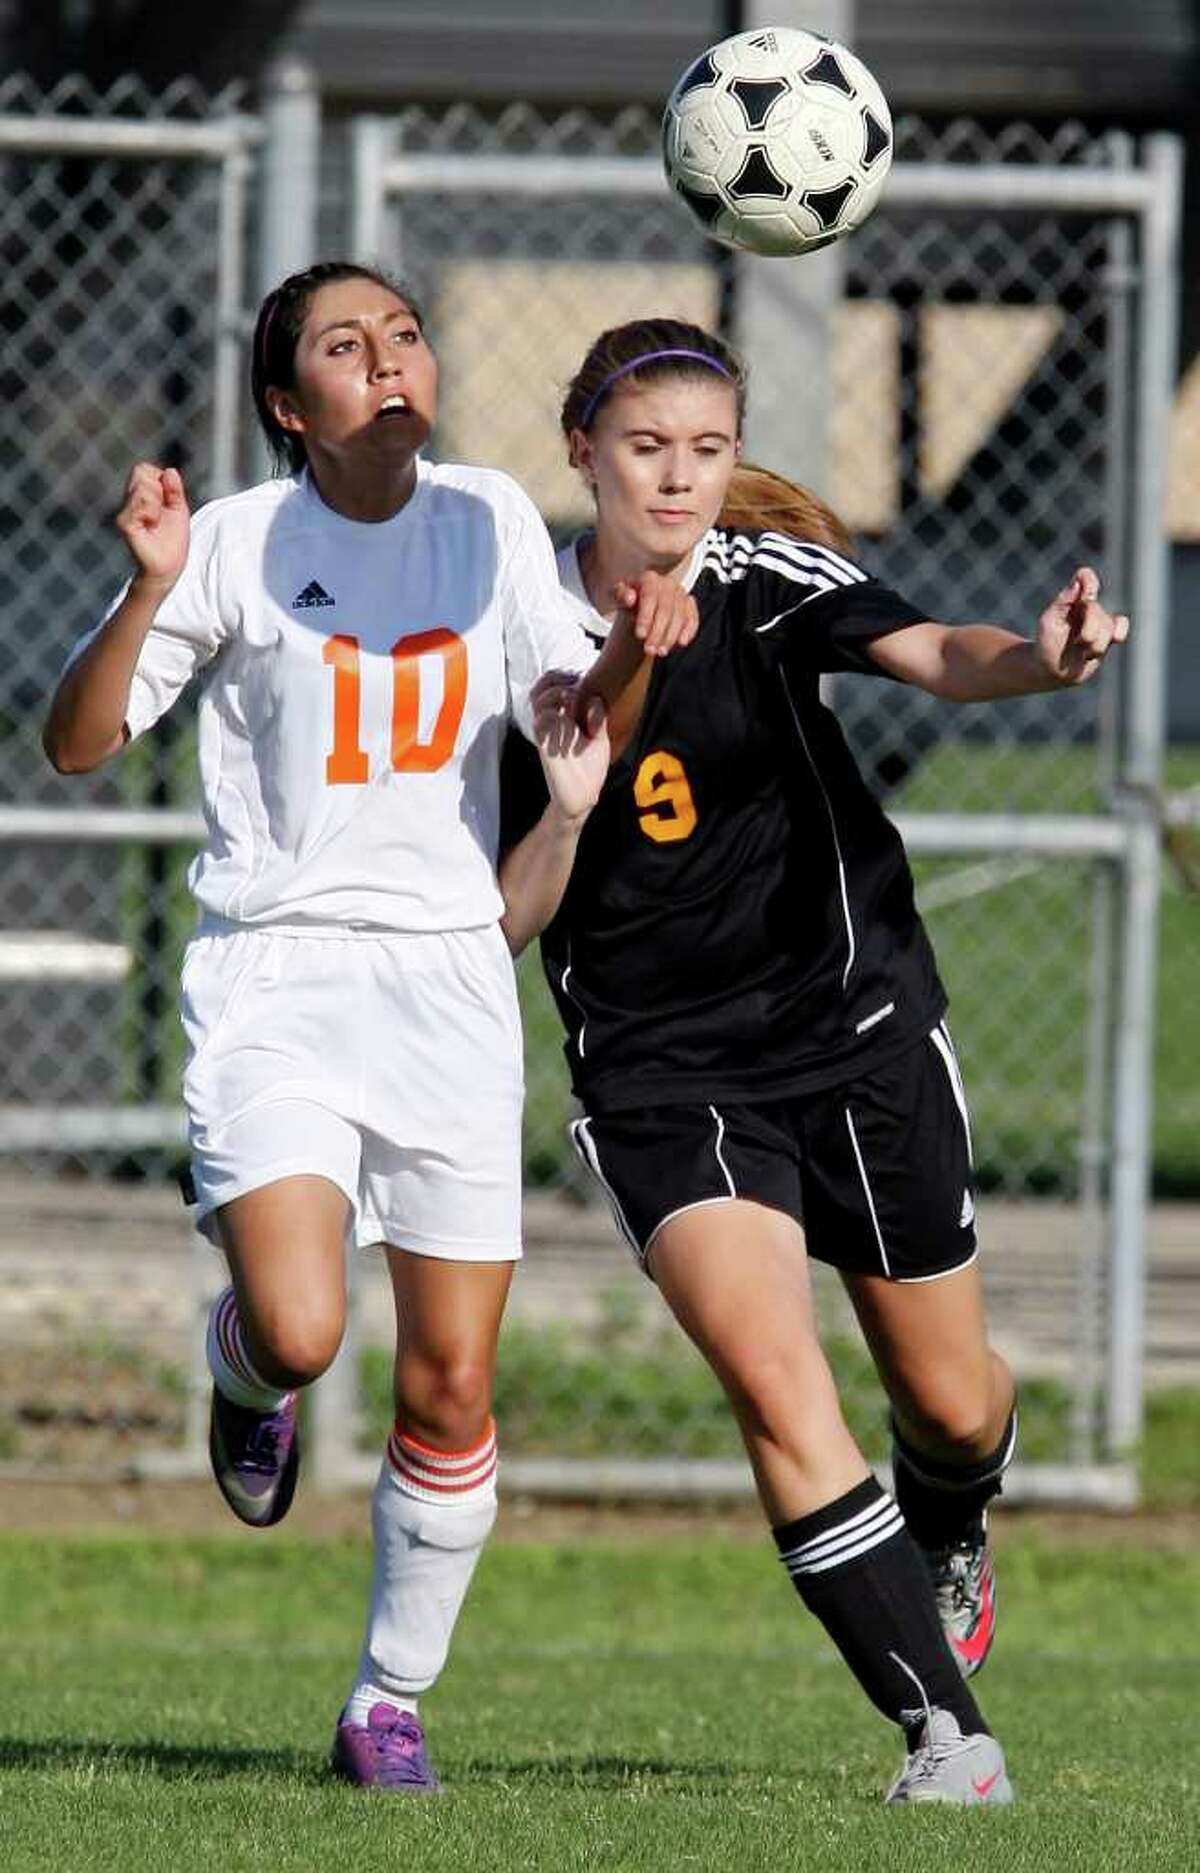 Burbank's Denise Ramirez (left) and Brennan's Caitlin Gabehart chase after the ball during first half action of their Class 4A first round playoff game Friday March 30, 2012 at SAISD Sports Complex.